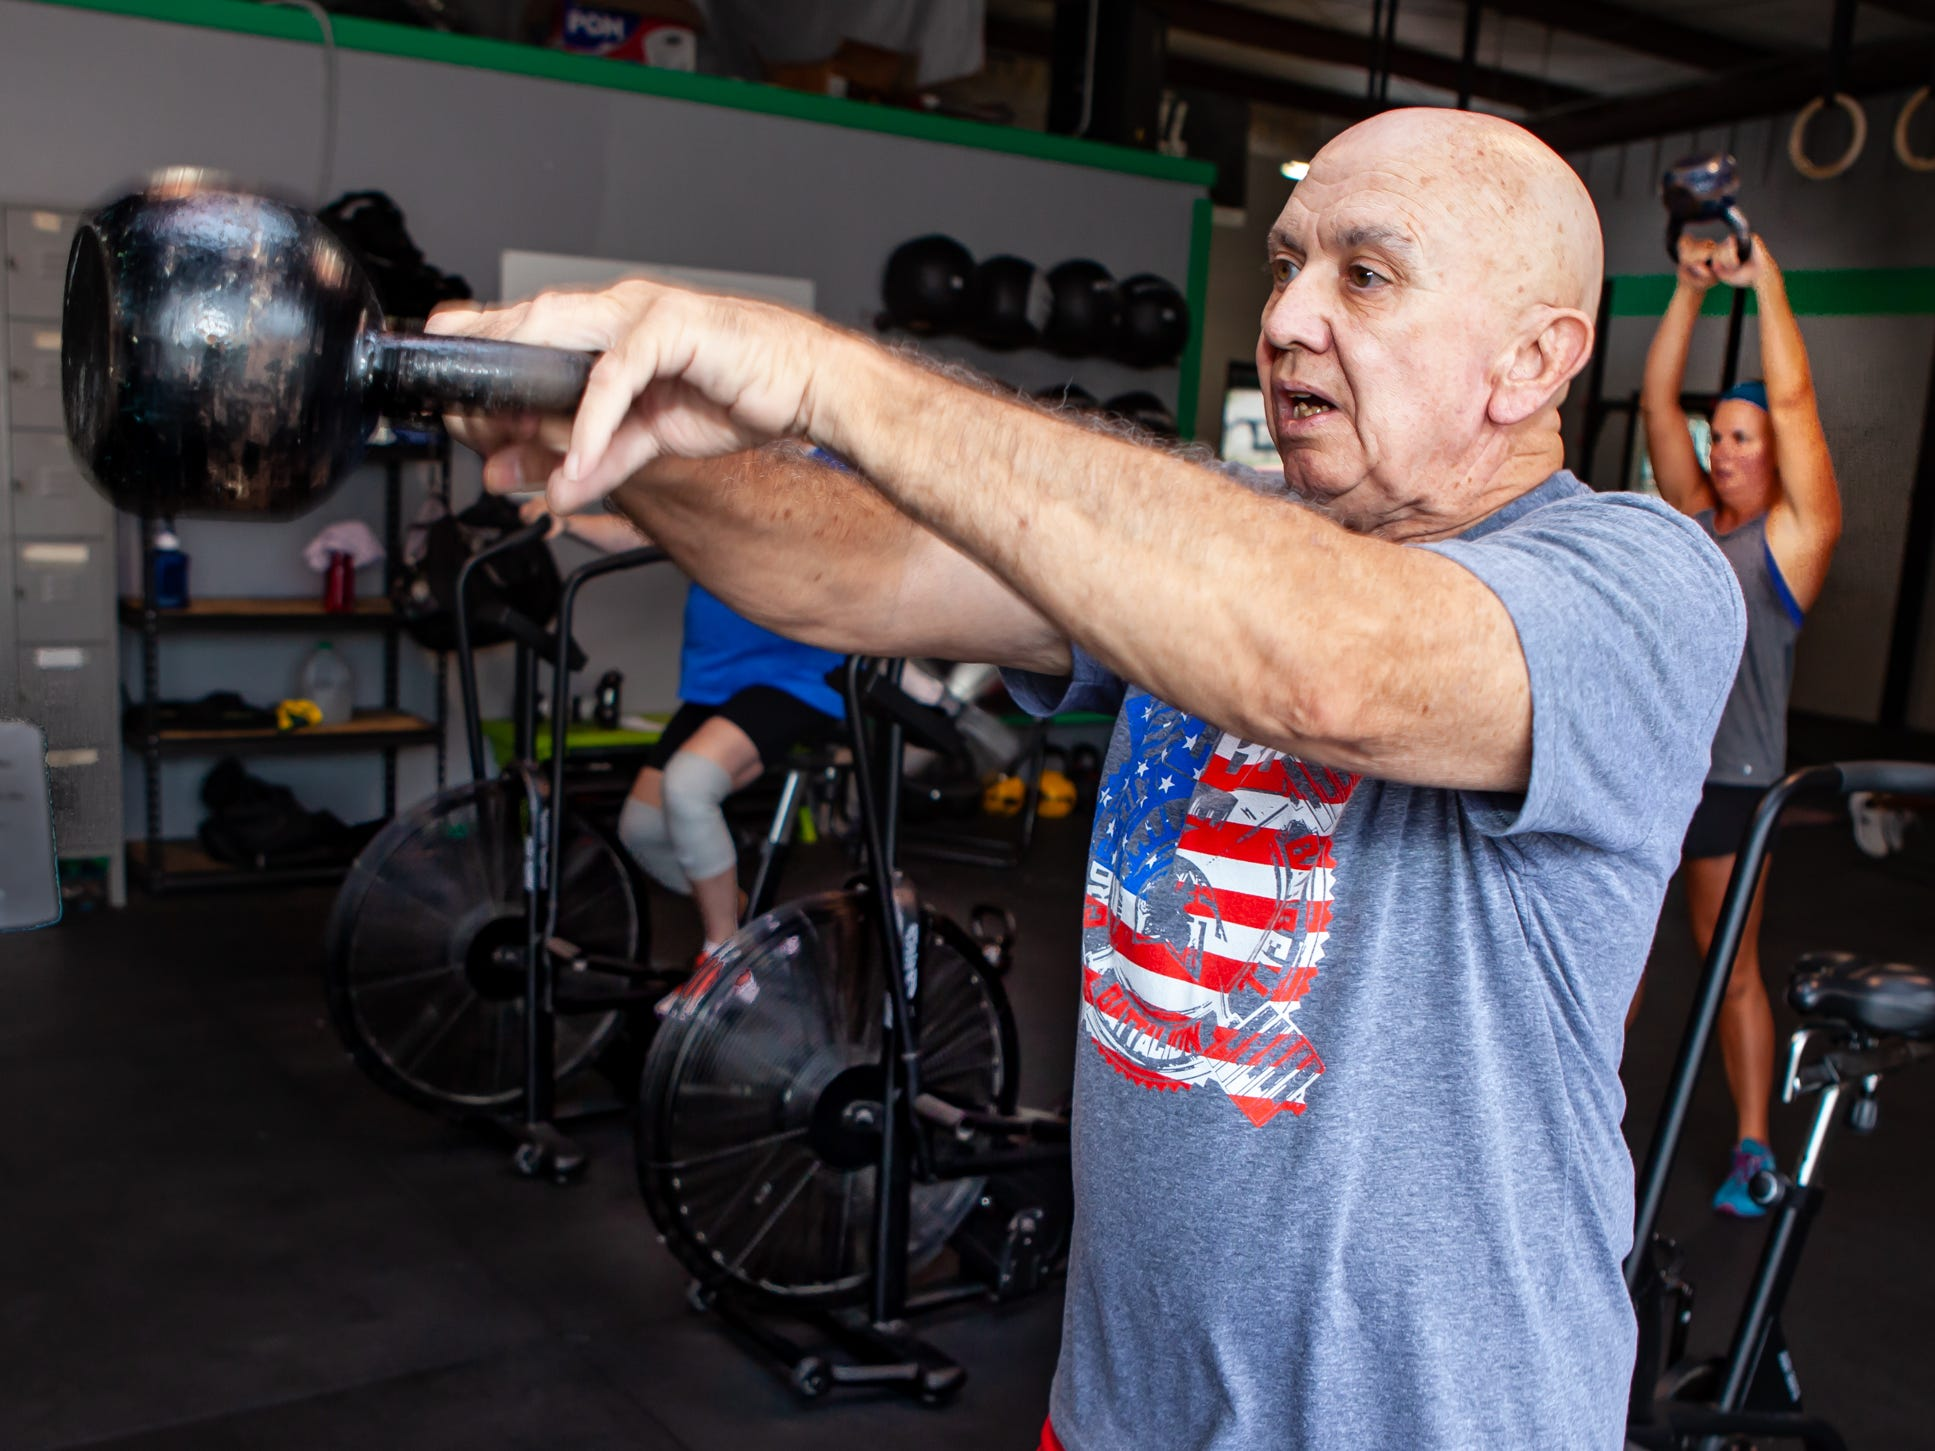 Alton Miles works out at the CrossFit Barbell Batallion in downtown Murfreesboro.